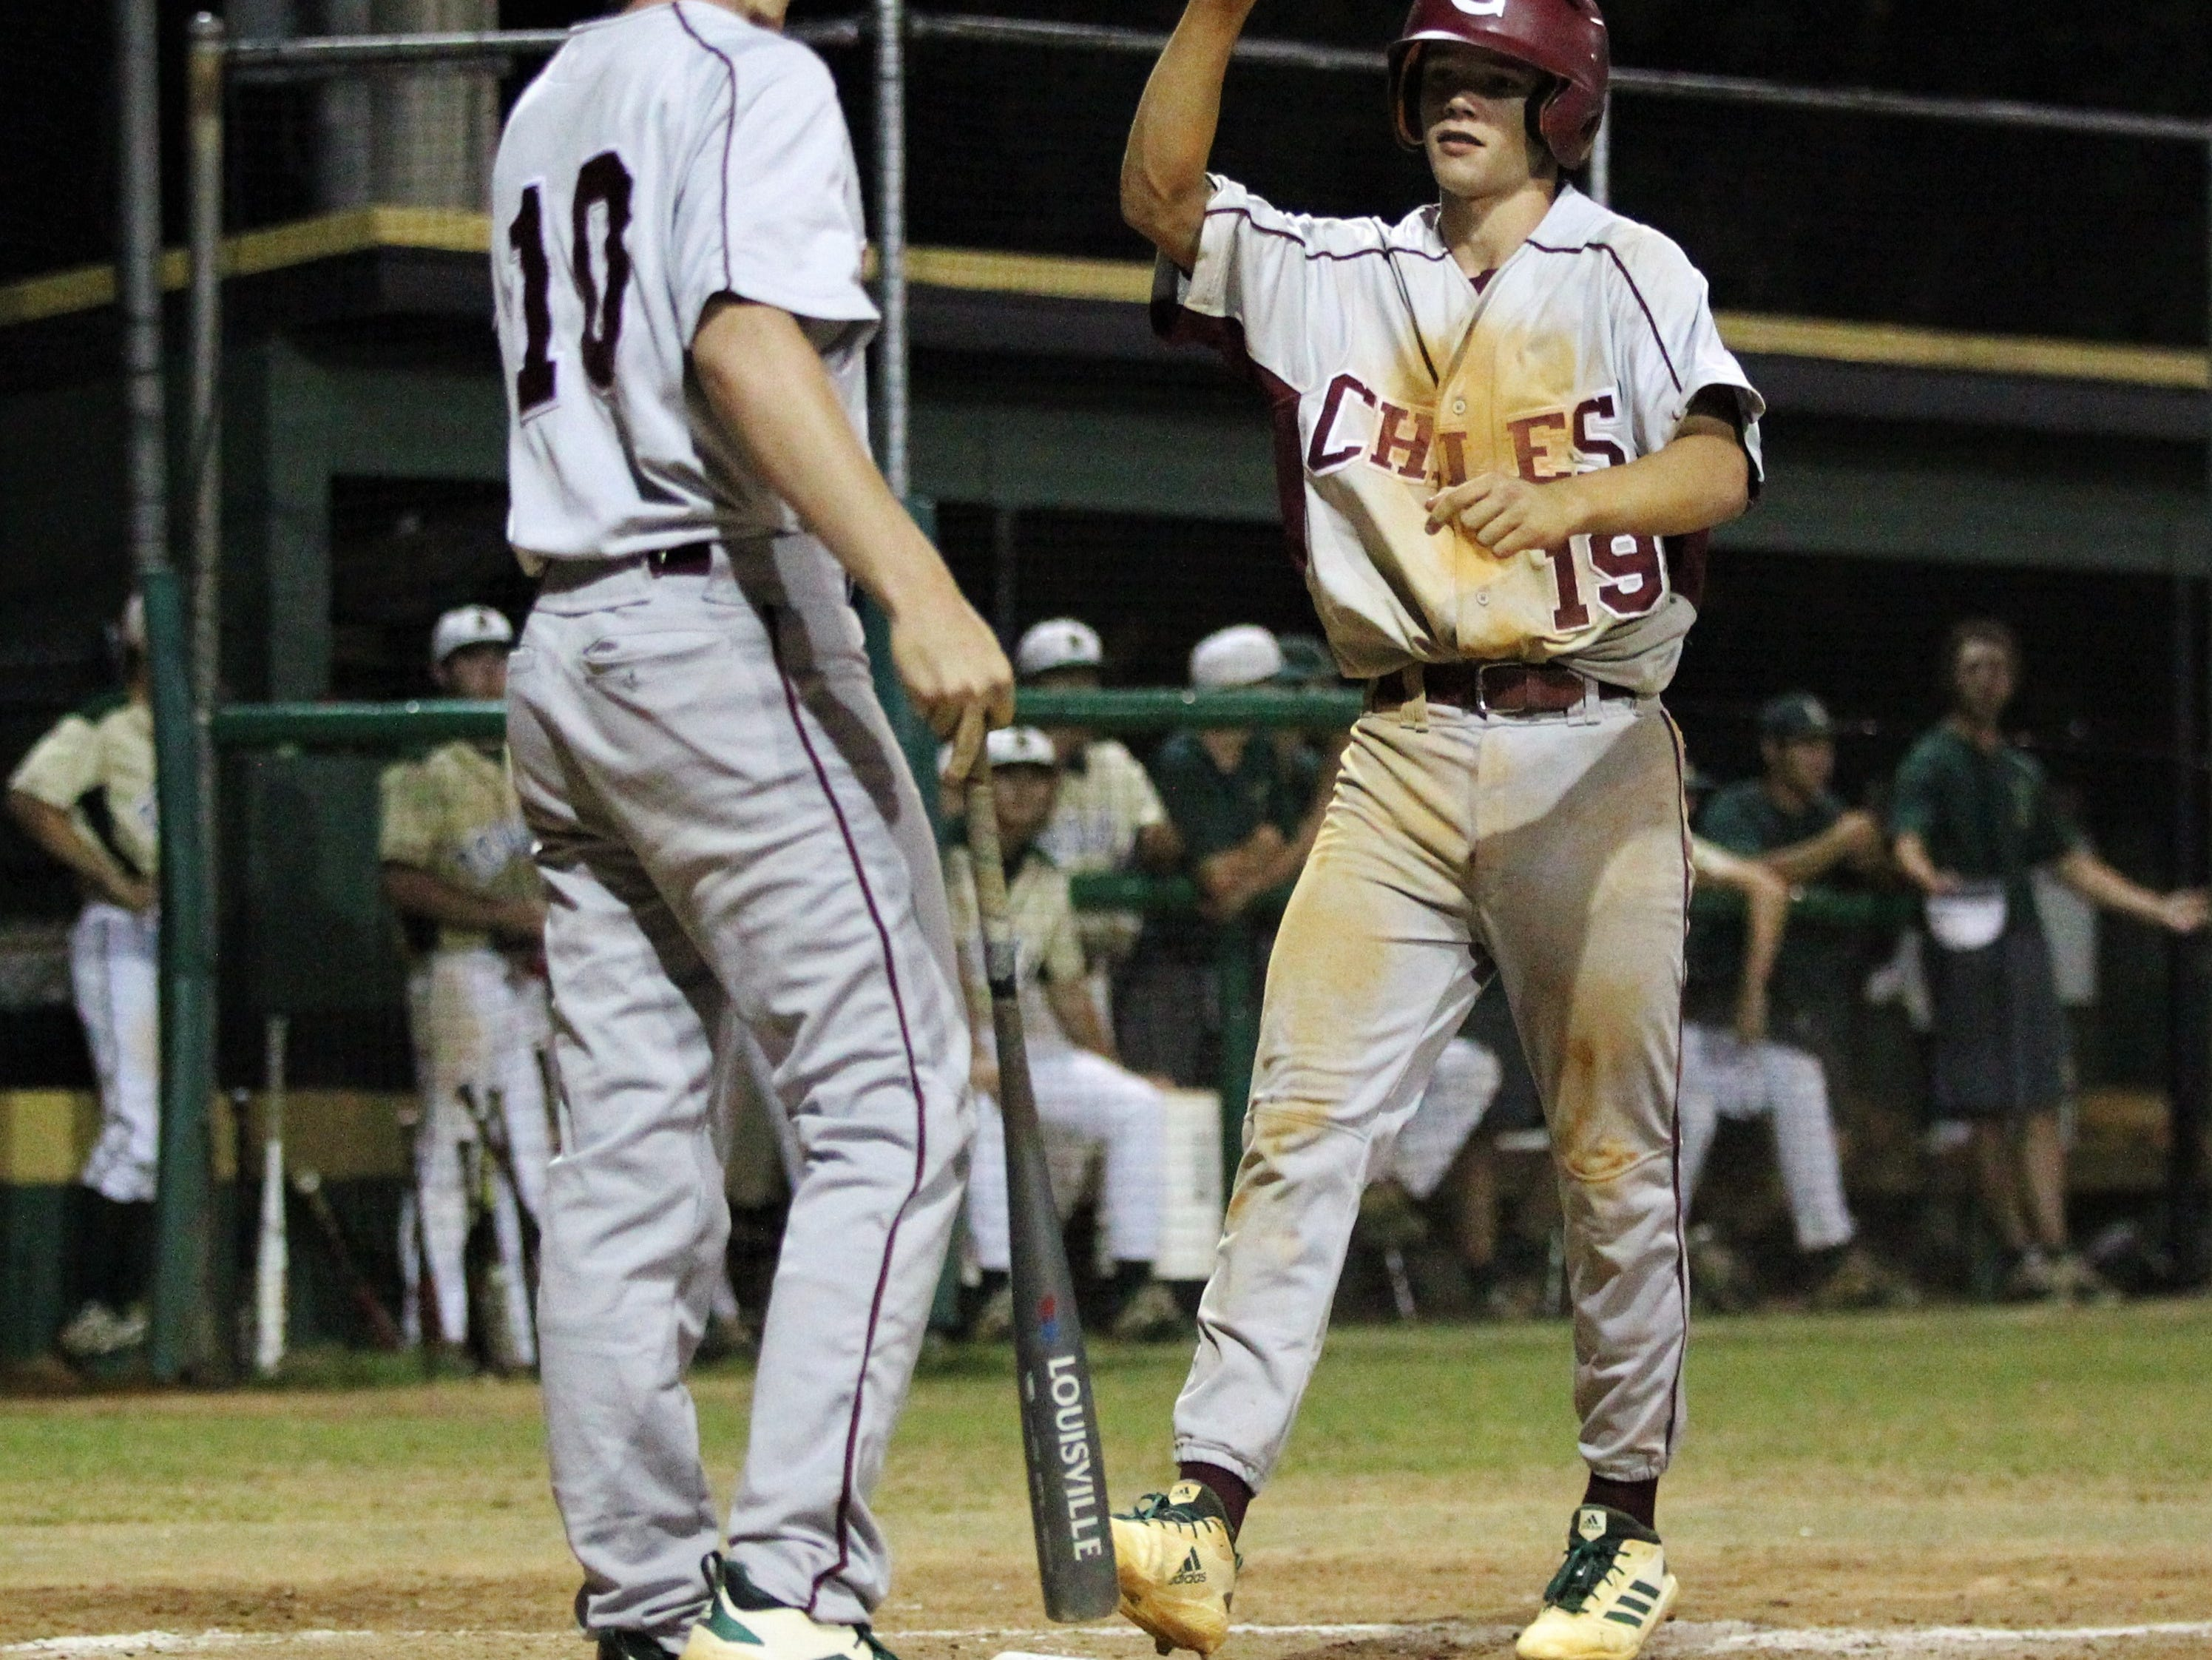 Chiles freshman Parker McDonald scores a go-ahead run on a bases loaded walk as Lincoln baseball beat Chiles 5-4  in 10 innings during a District 2-8A championship game on Thursday, May 9, 2019.